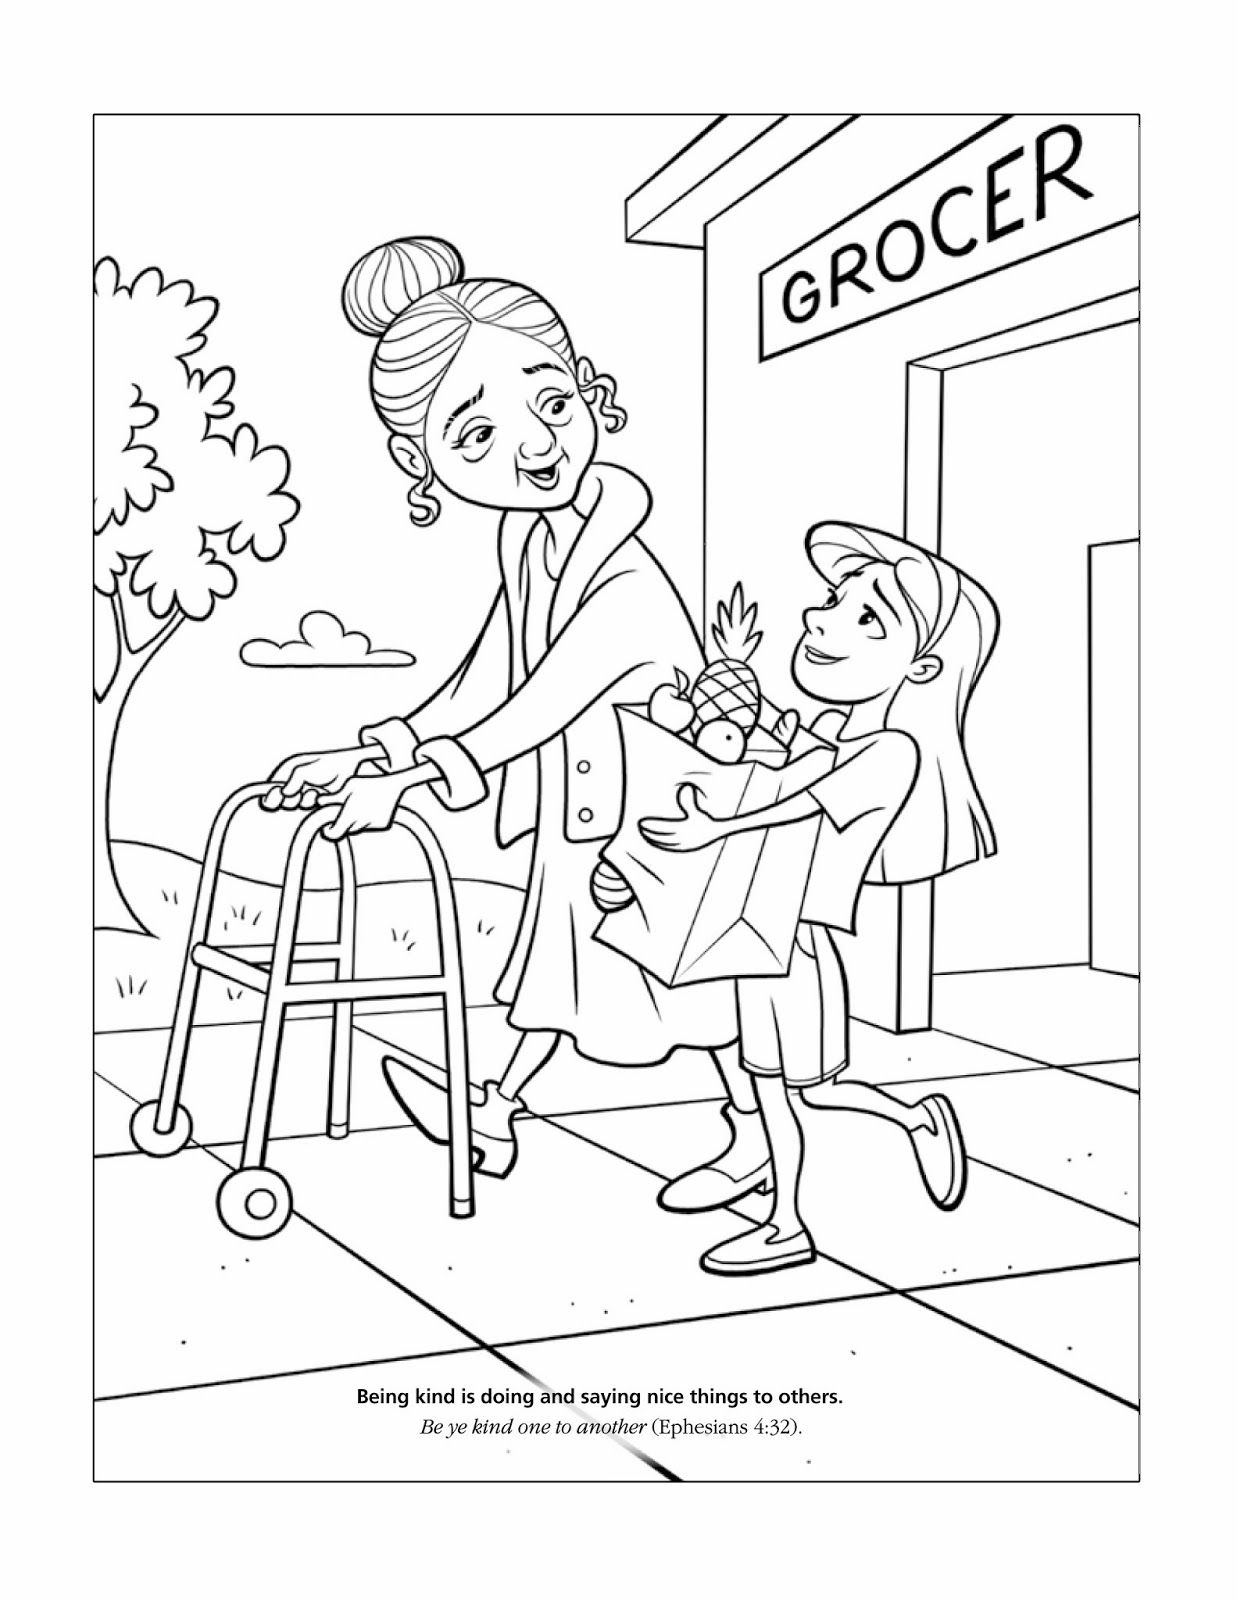 EPHESIANS 4:32 LDS Teaching Visuals: Coloring Pages